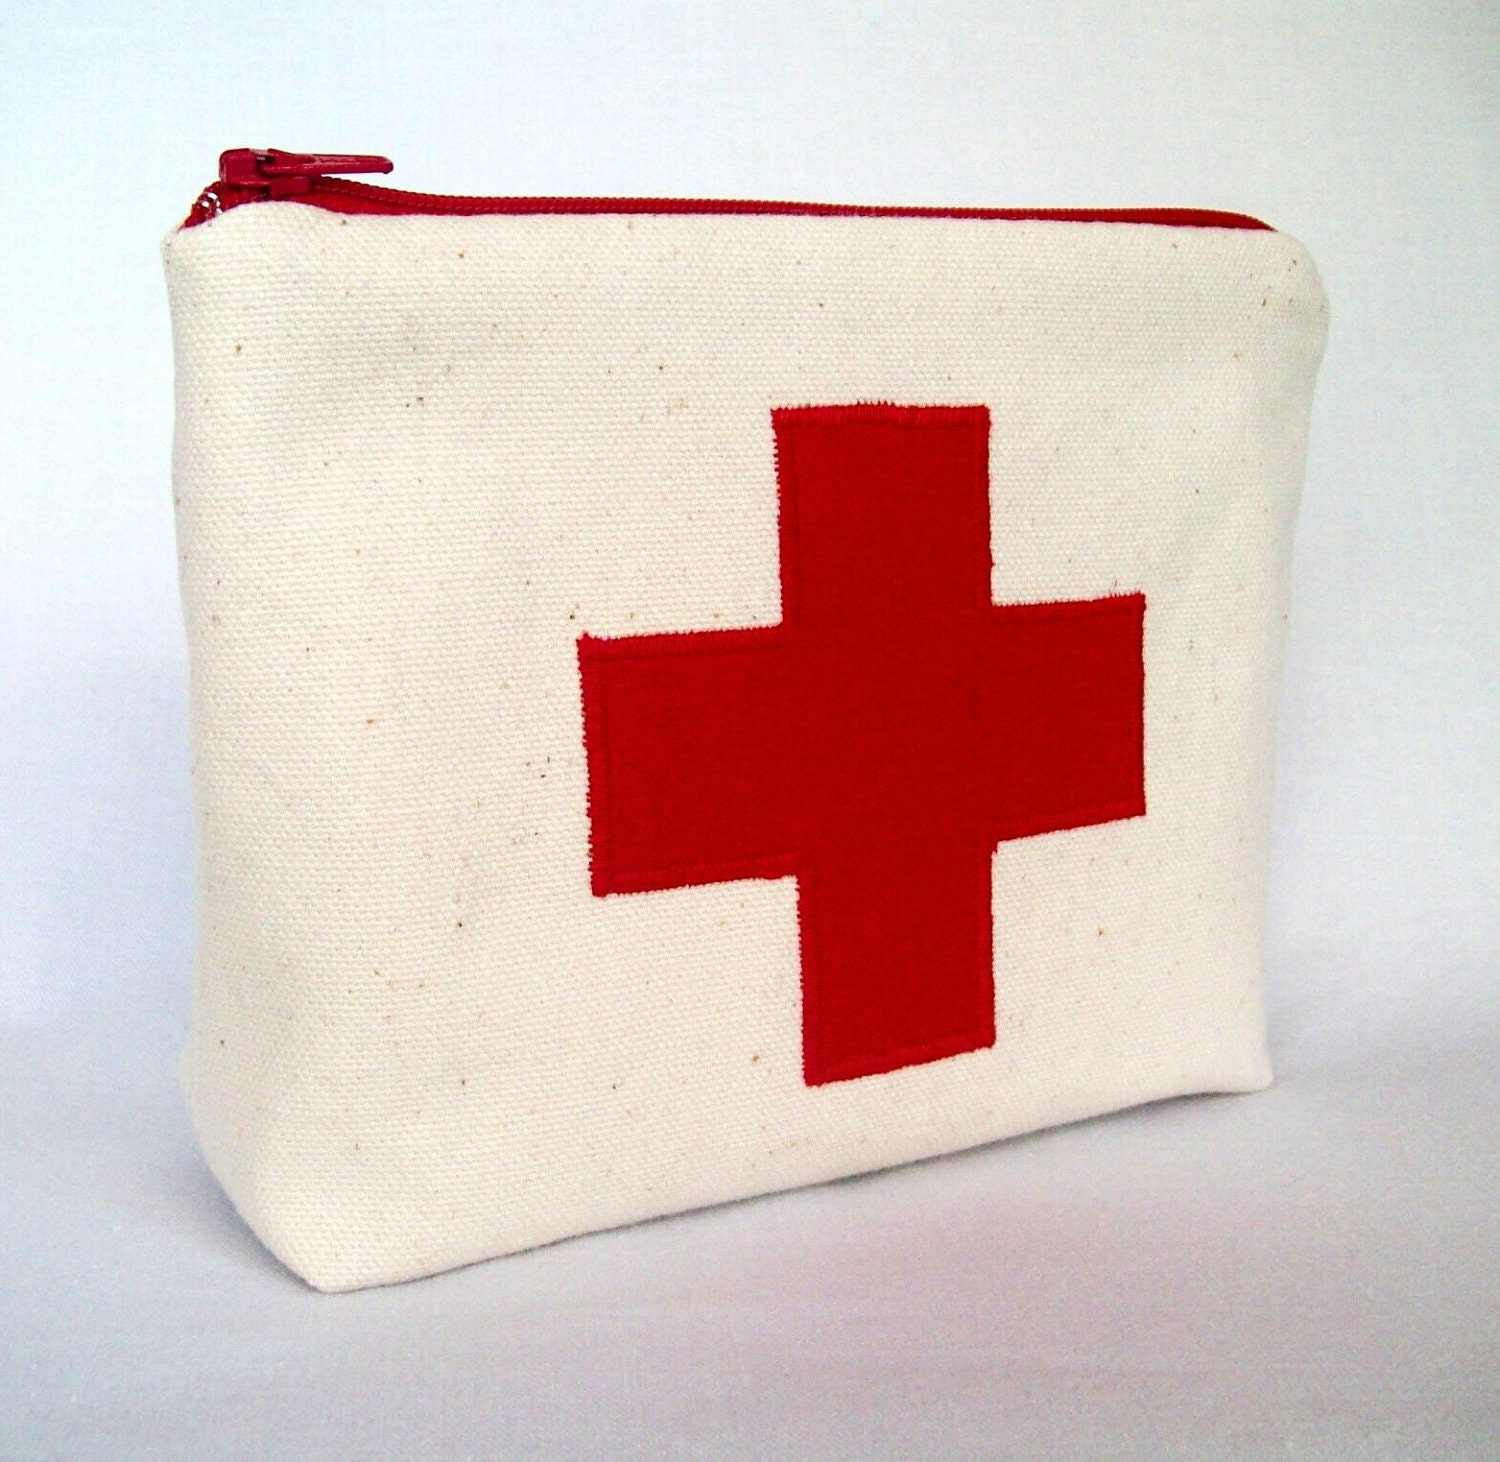 Red Cross Medicine Pouch First Aid Kit 7 X 5 X